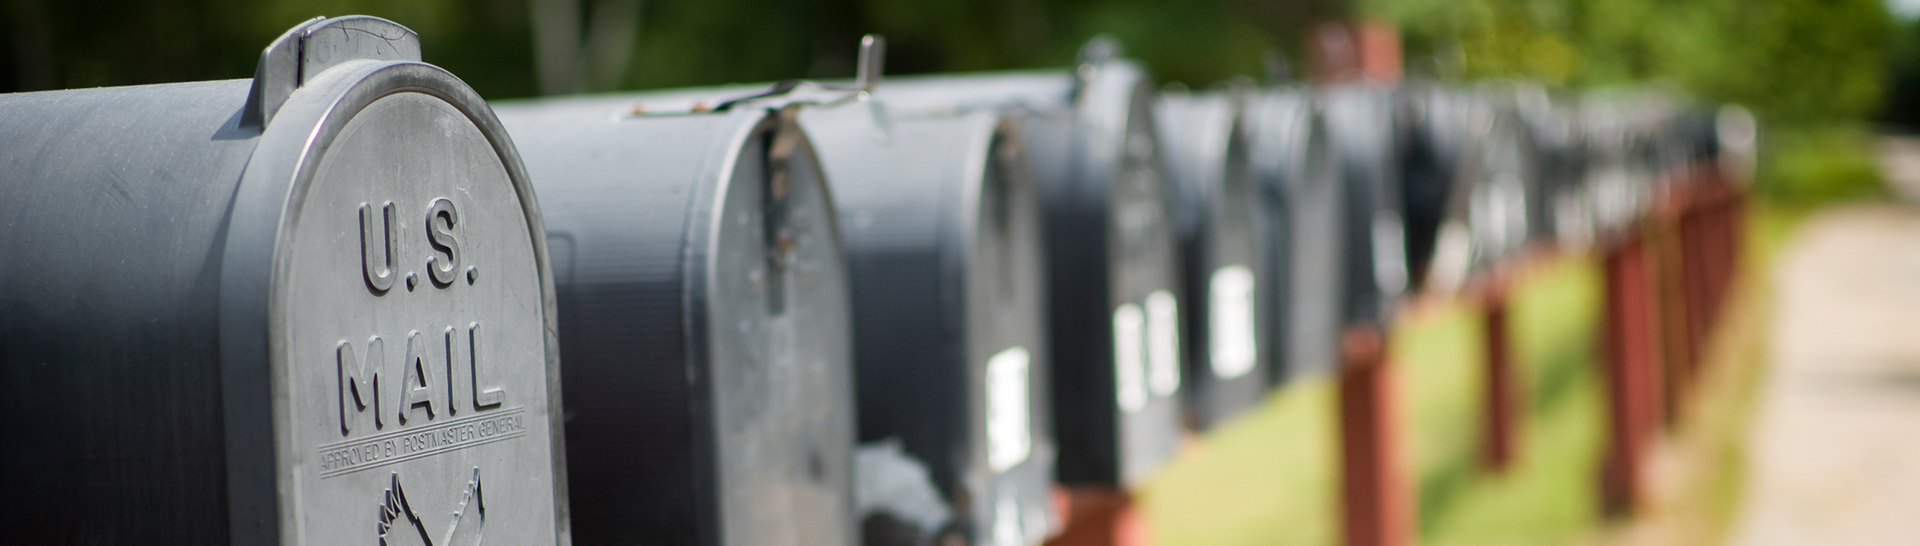 Row of black mailboxes outside on street